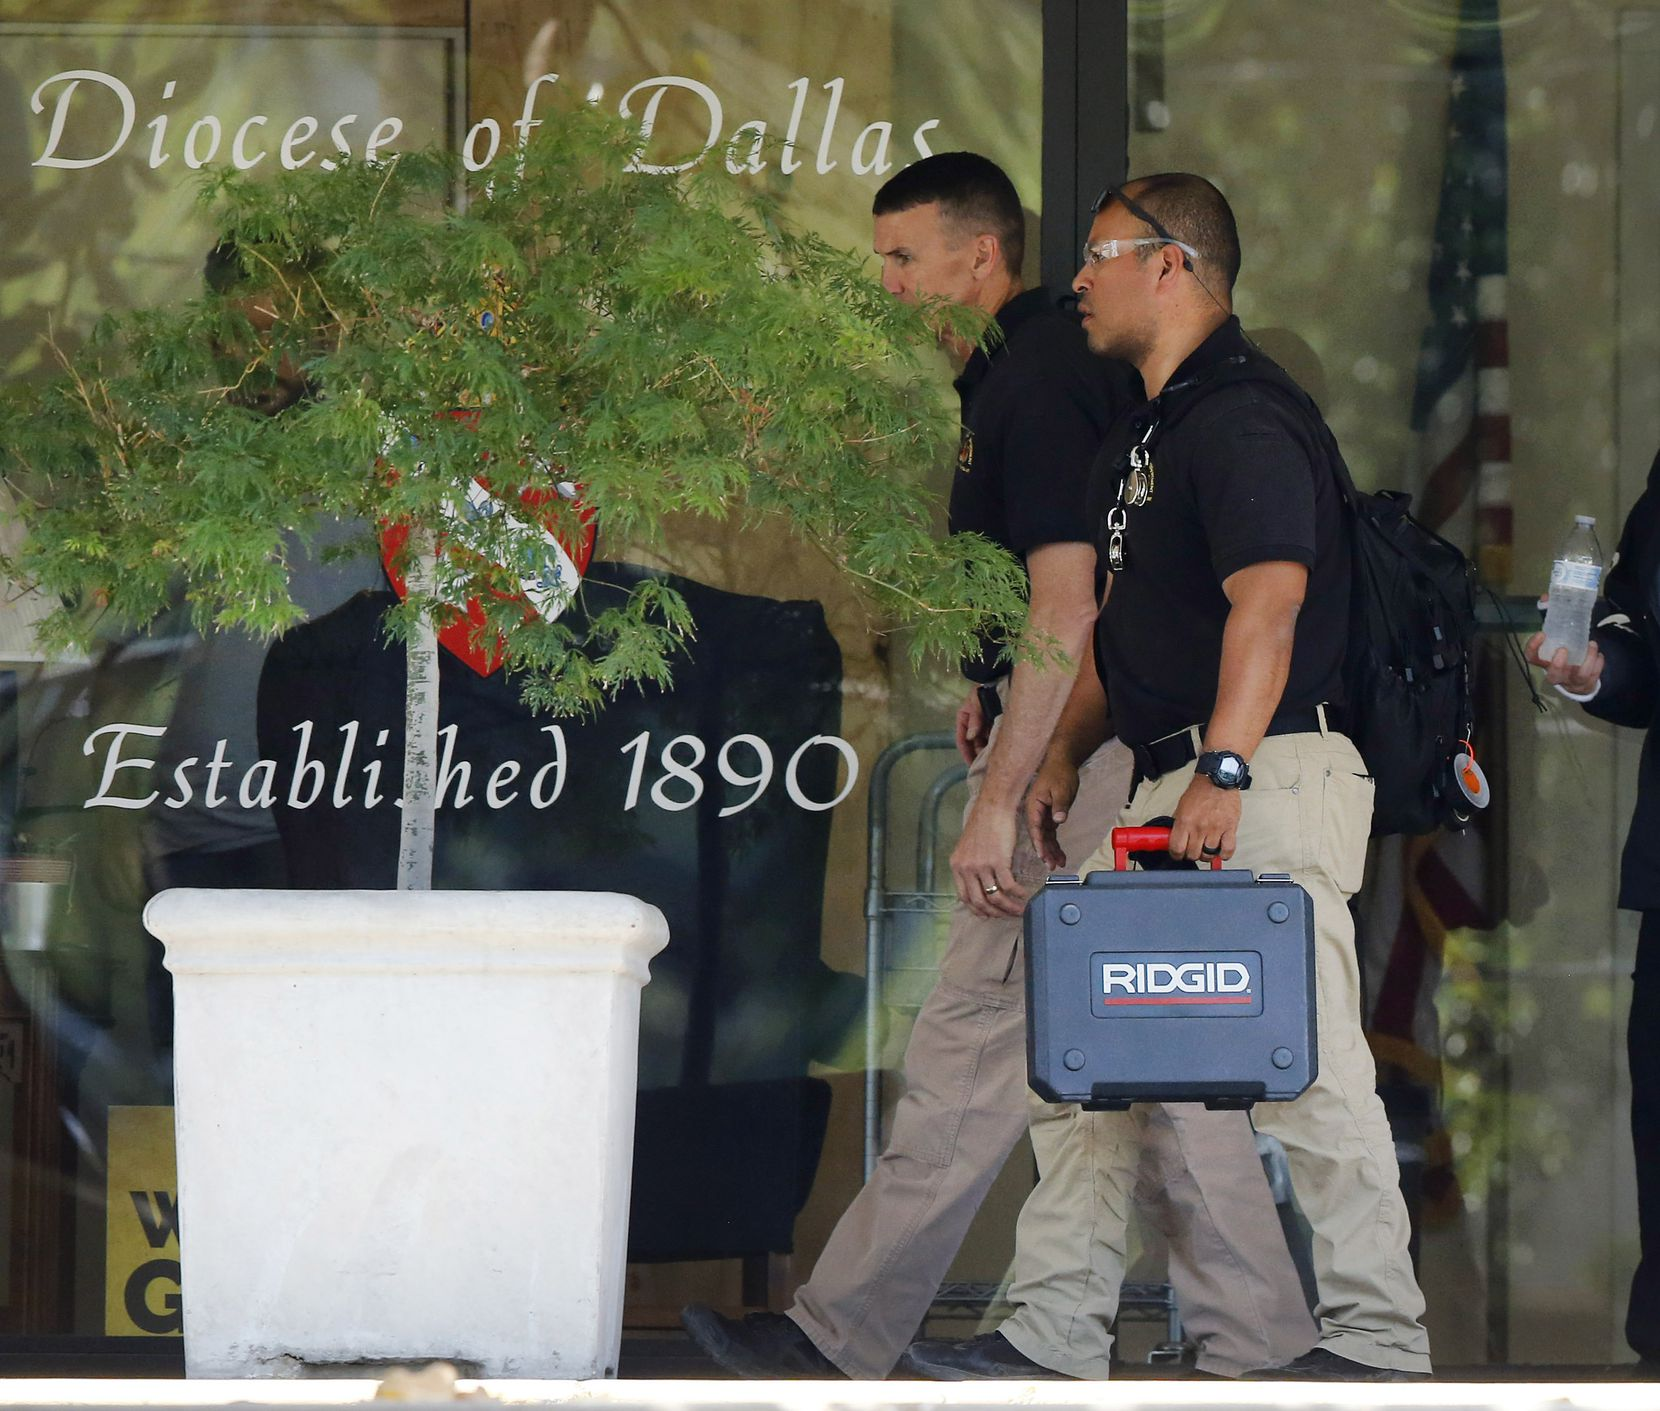 Law enforcement officials worked Wednesday at the offices of the Catholic Diocese of Dallas.